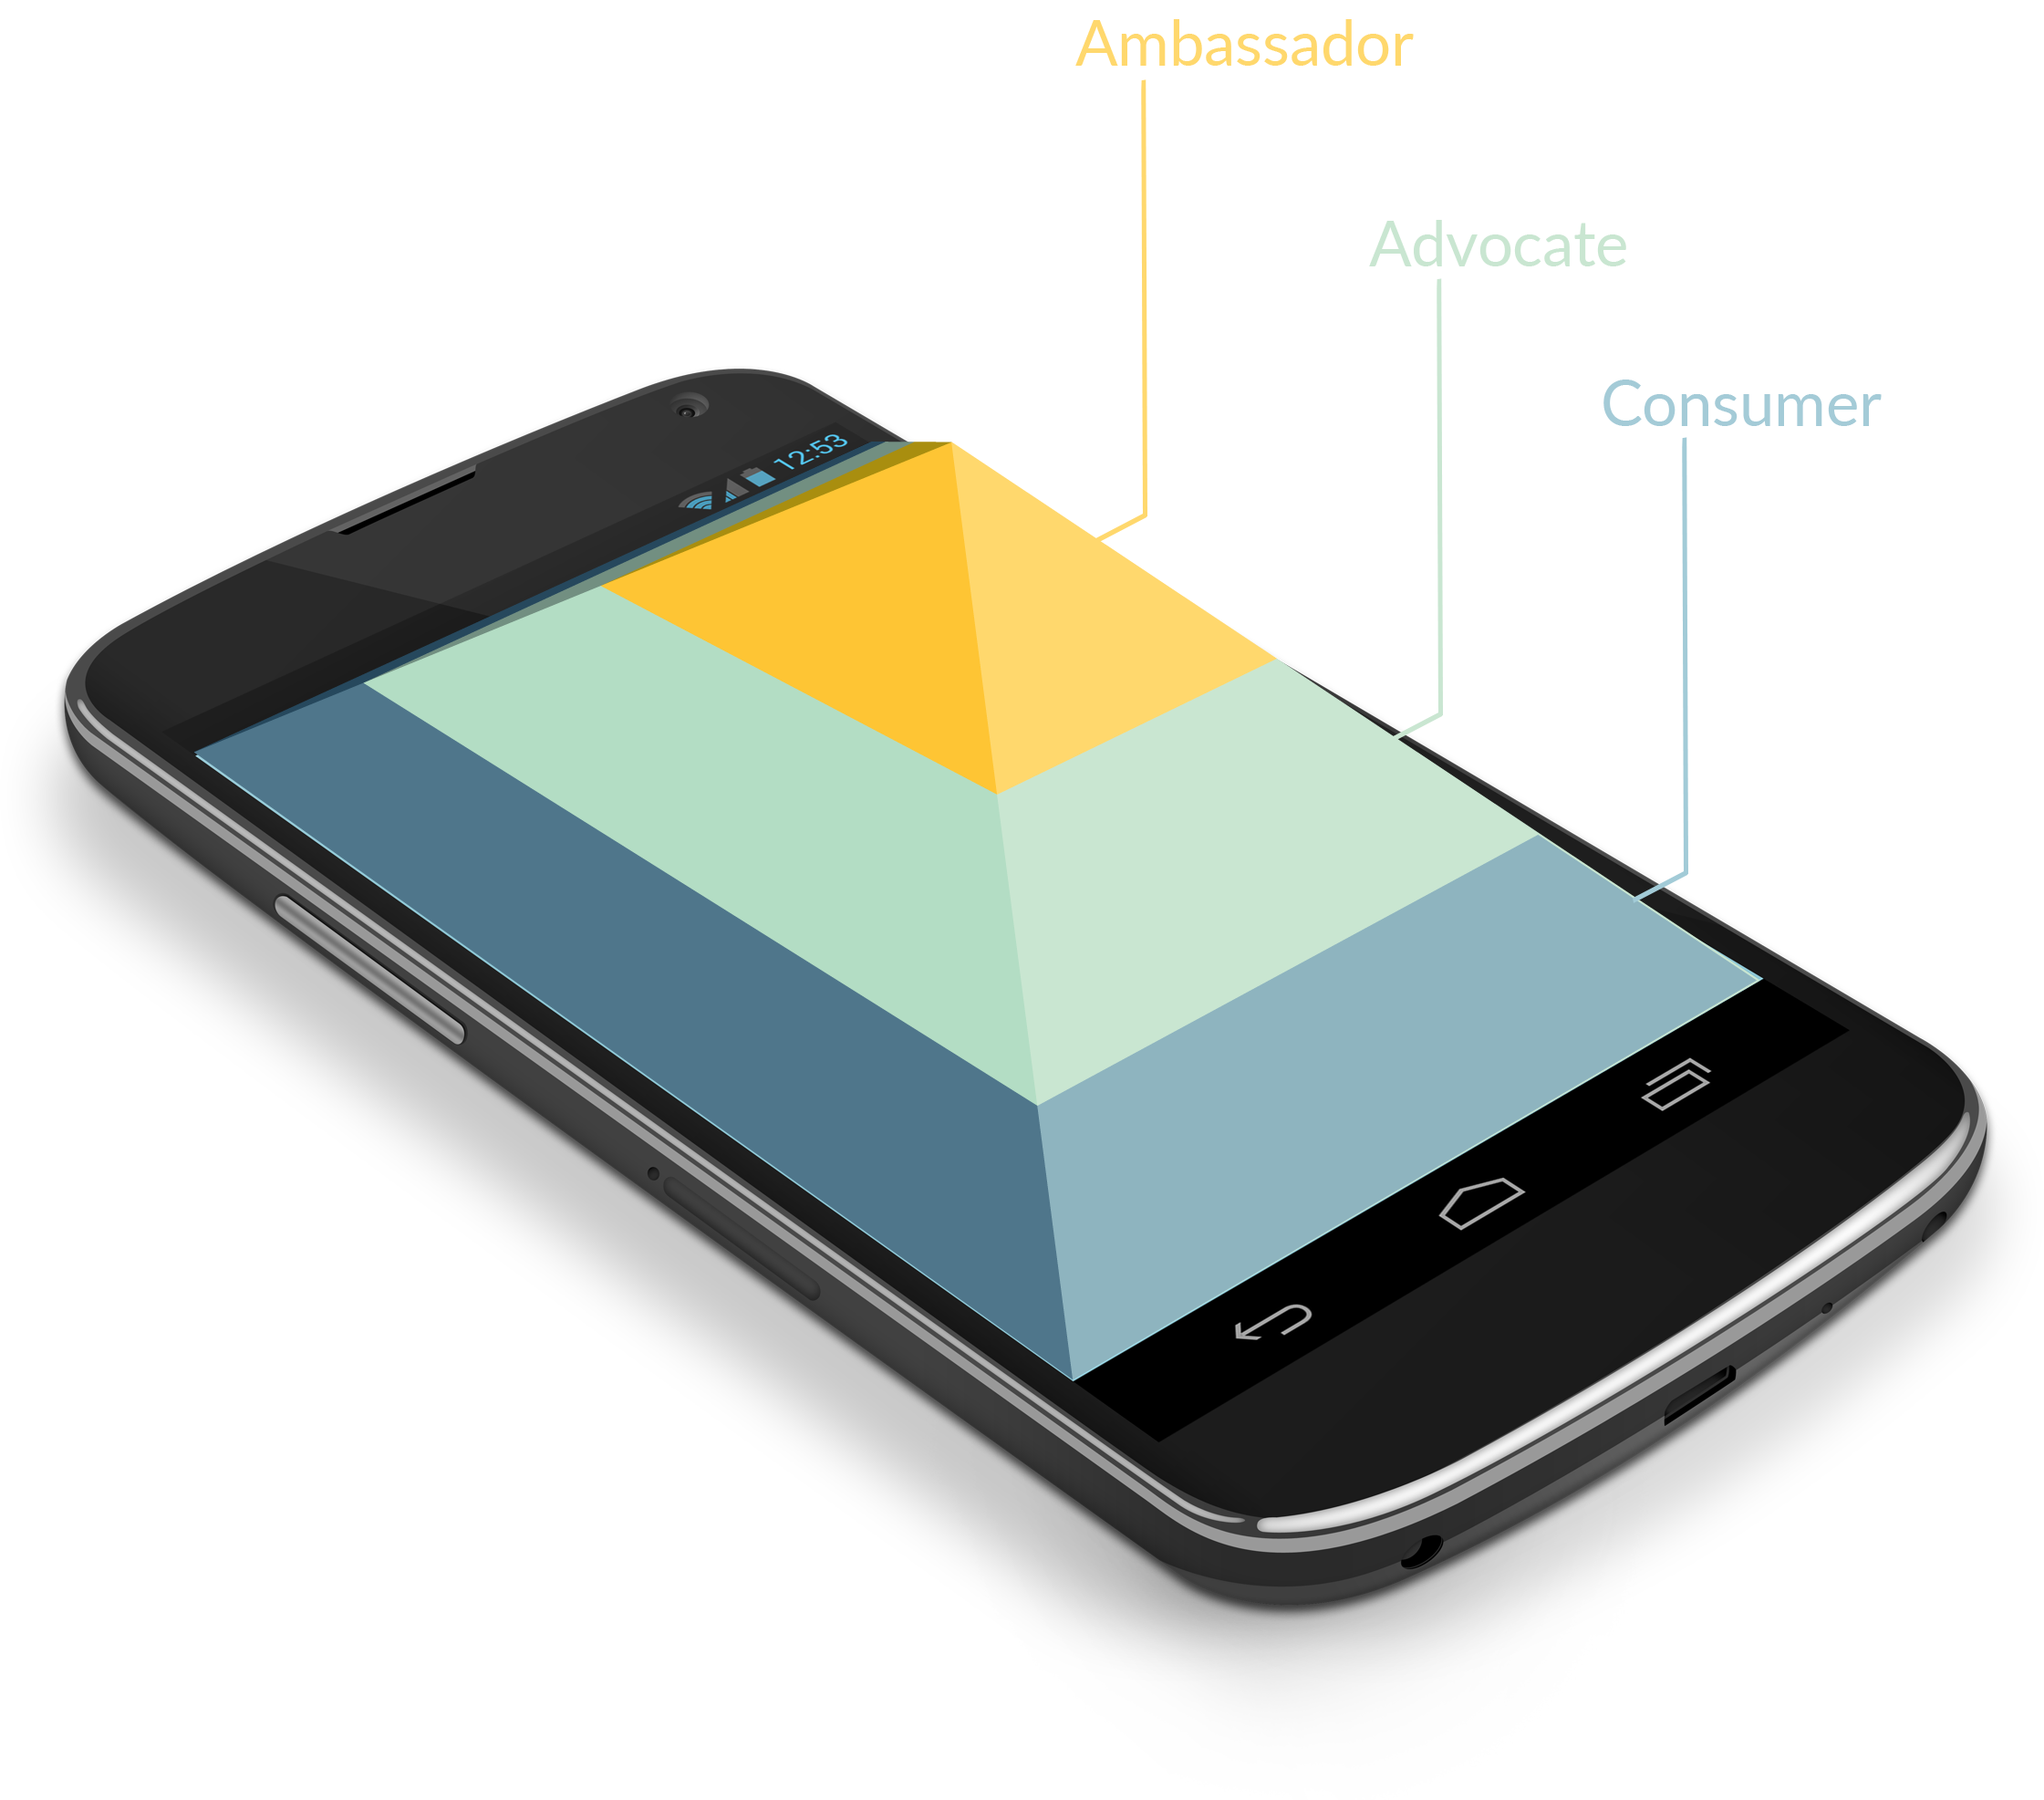 phone with pyramid diagram